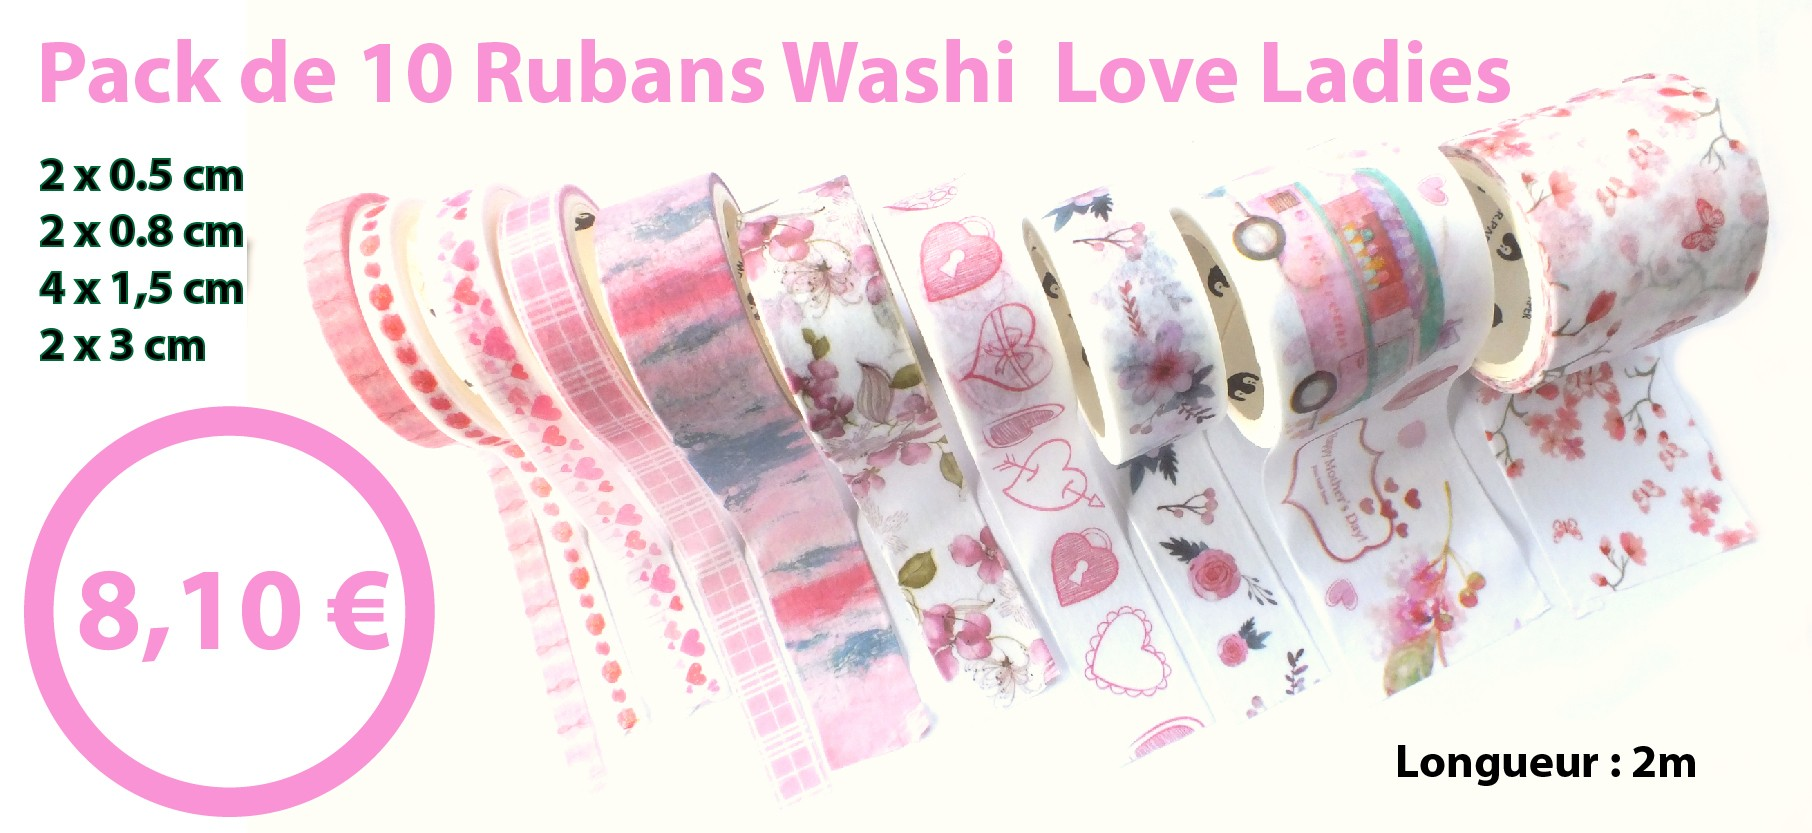 pack rubans washi love ladies